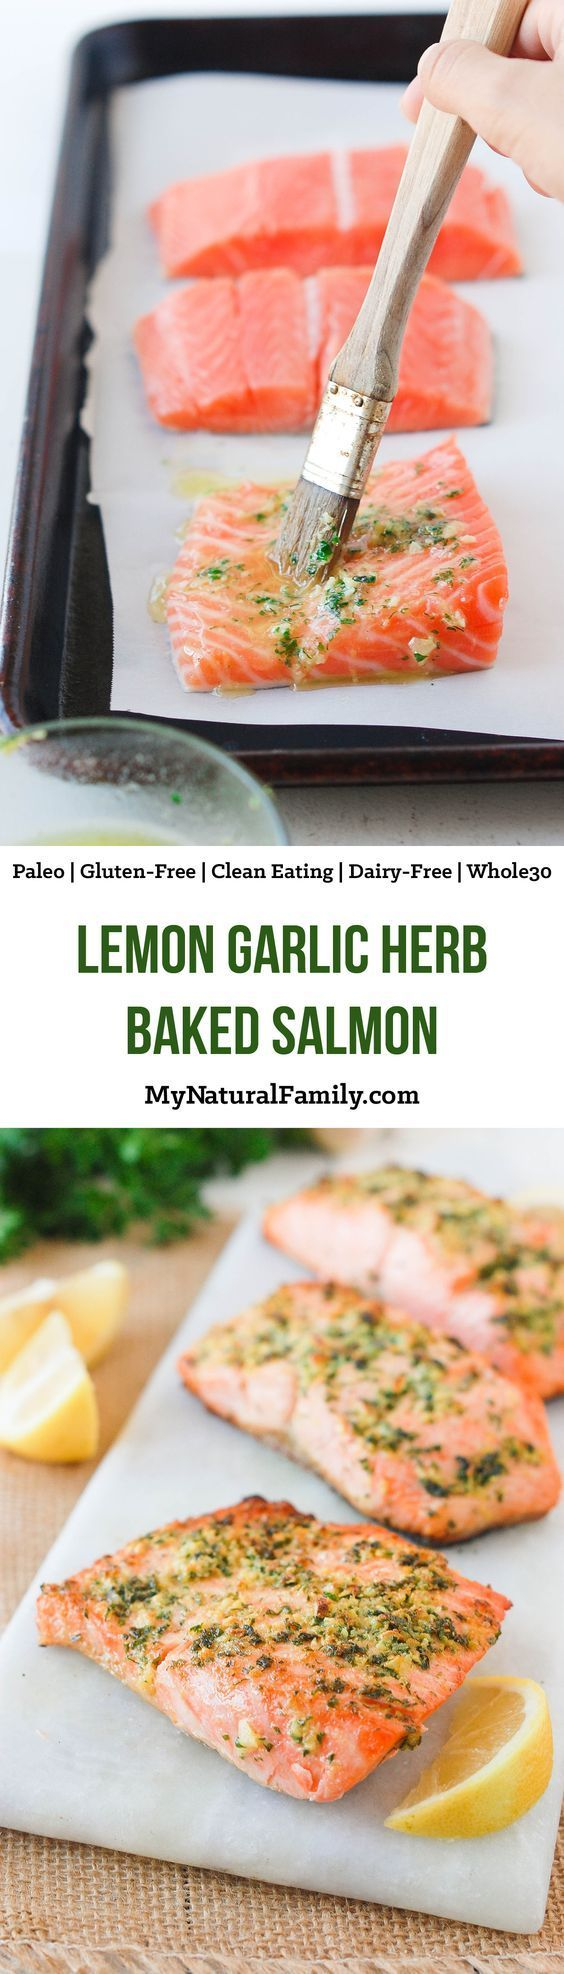 Lemon Garlic Herb Crusted Salmon Recipe plus 24 more of the most popular pinned Paleo recipes